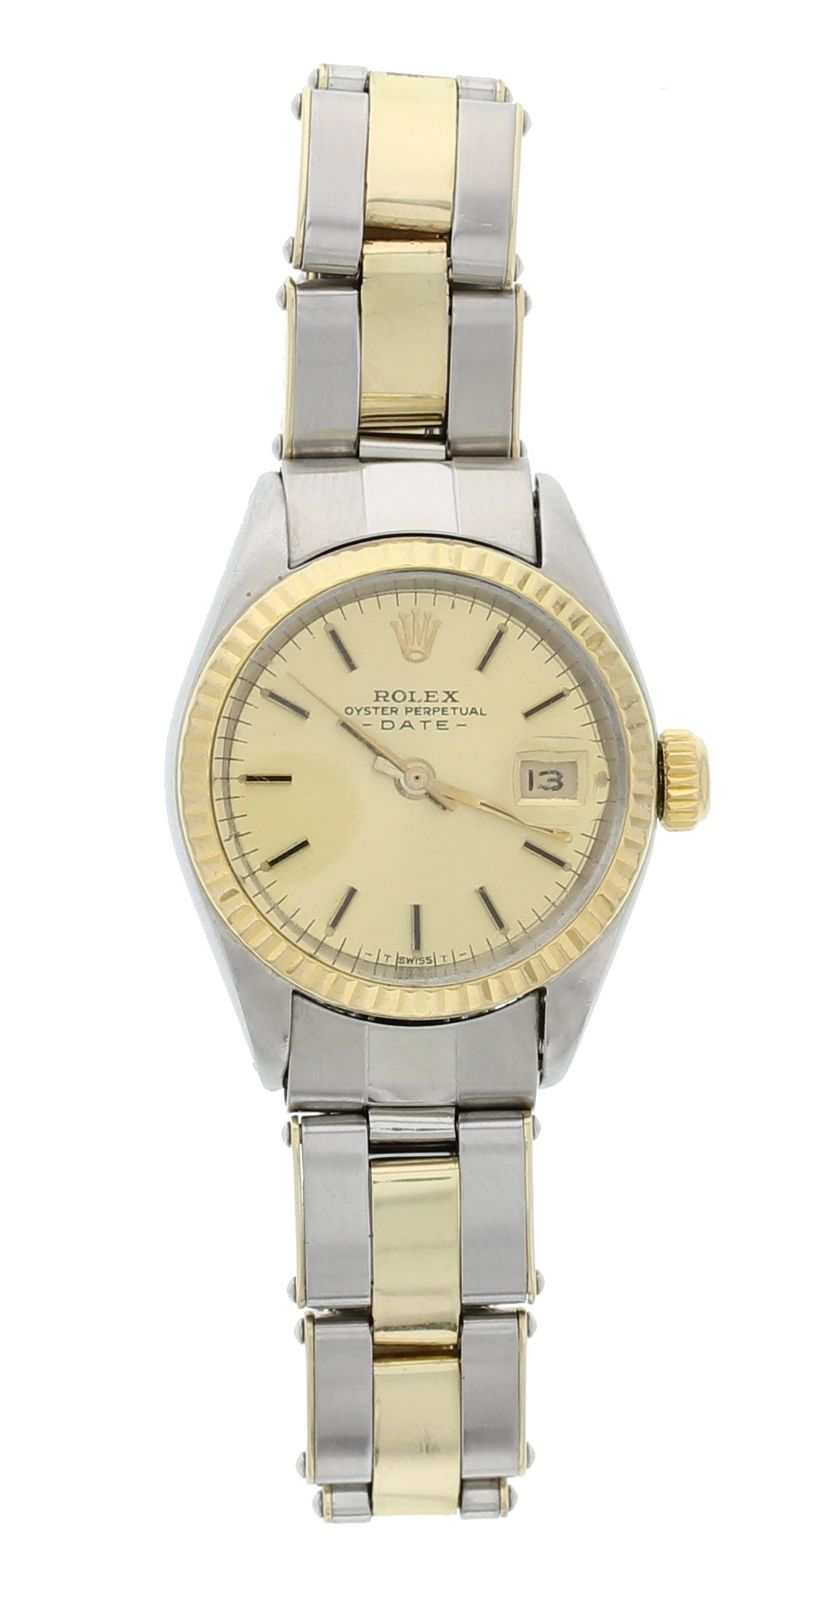 """Image of """"Rolex Oyster Perpetual Date 6916 Two Tone Stainless Steel Vintage 26mm"""""""